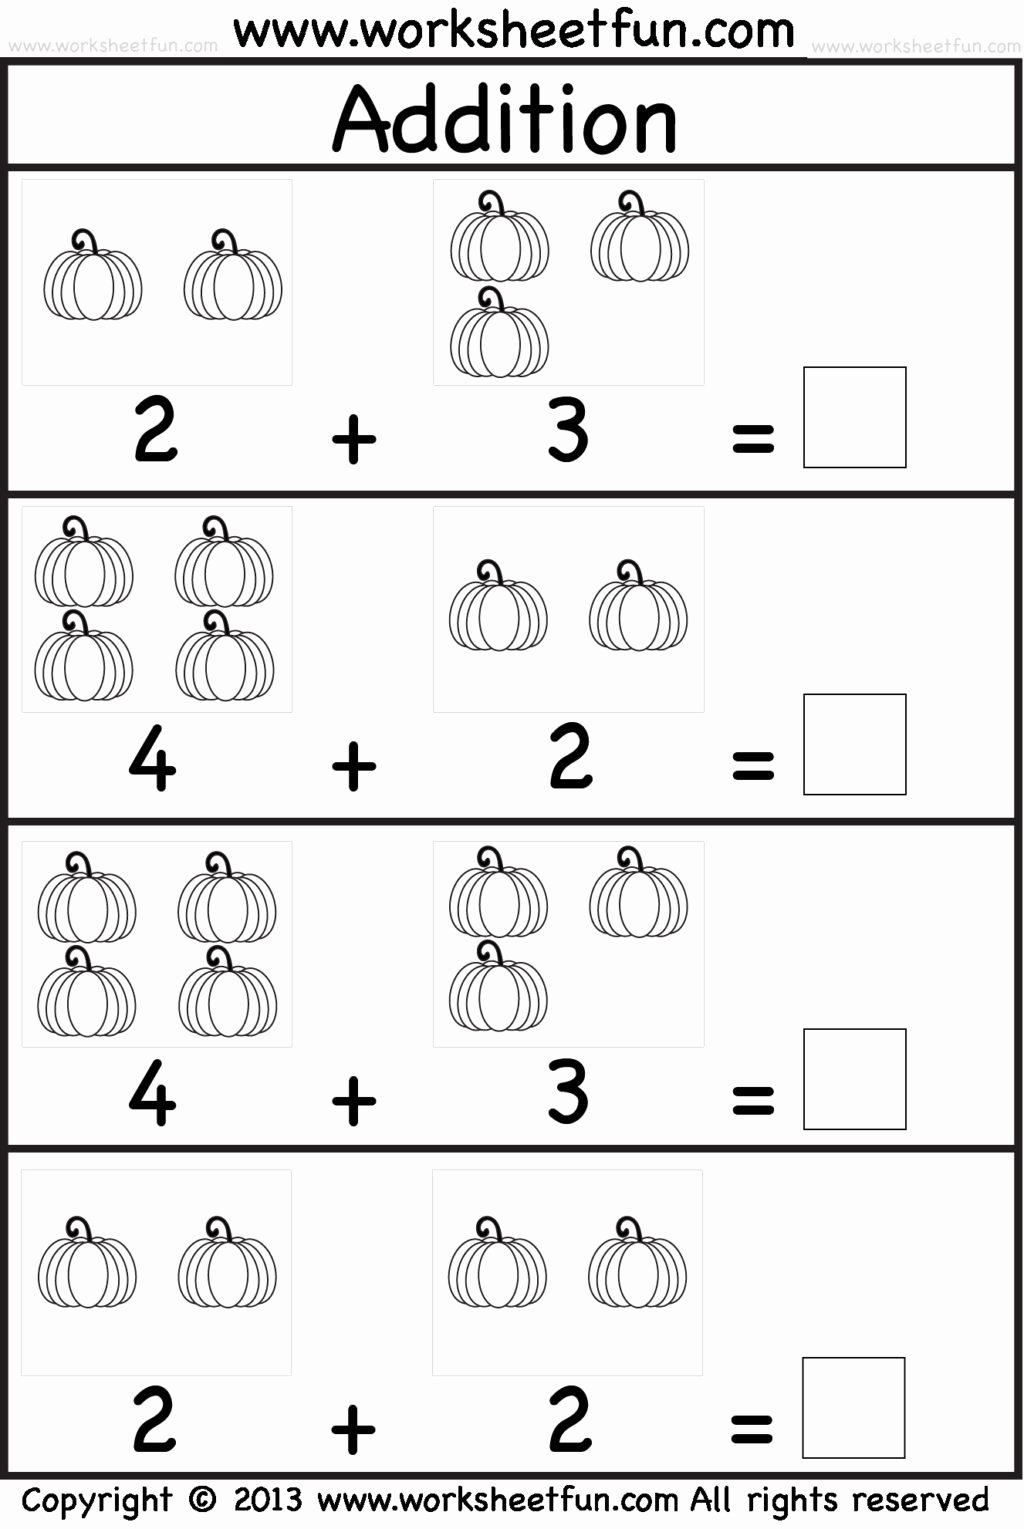 Addition Worksheets for Preschoolers with Pictures top Worksheet Kindergarten Math Worksheets for Printable